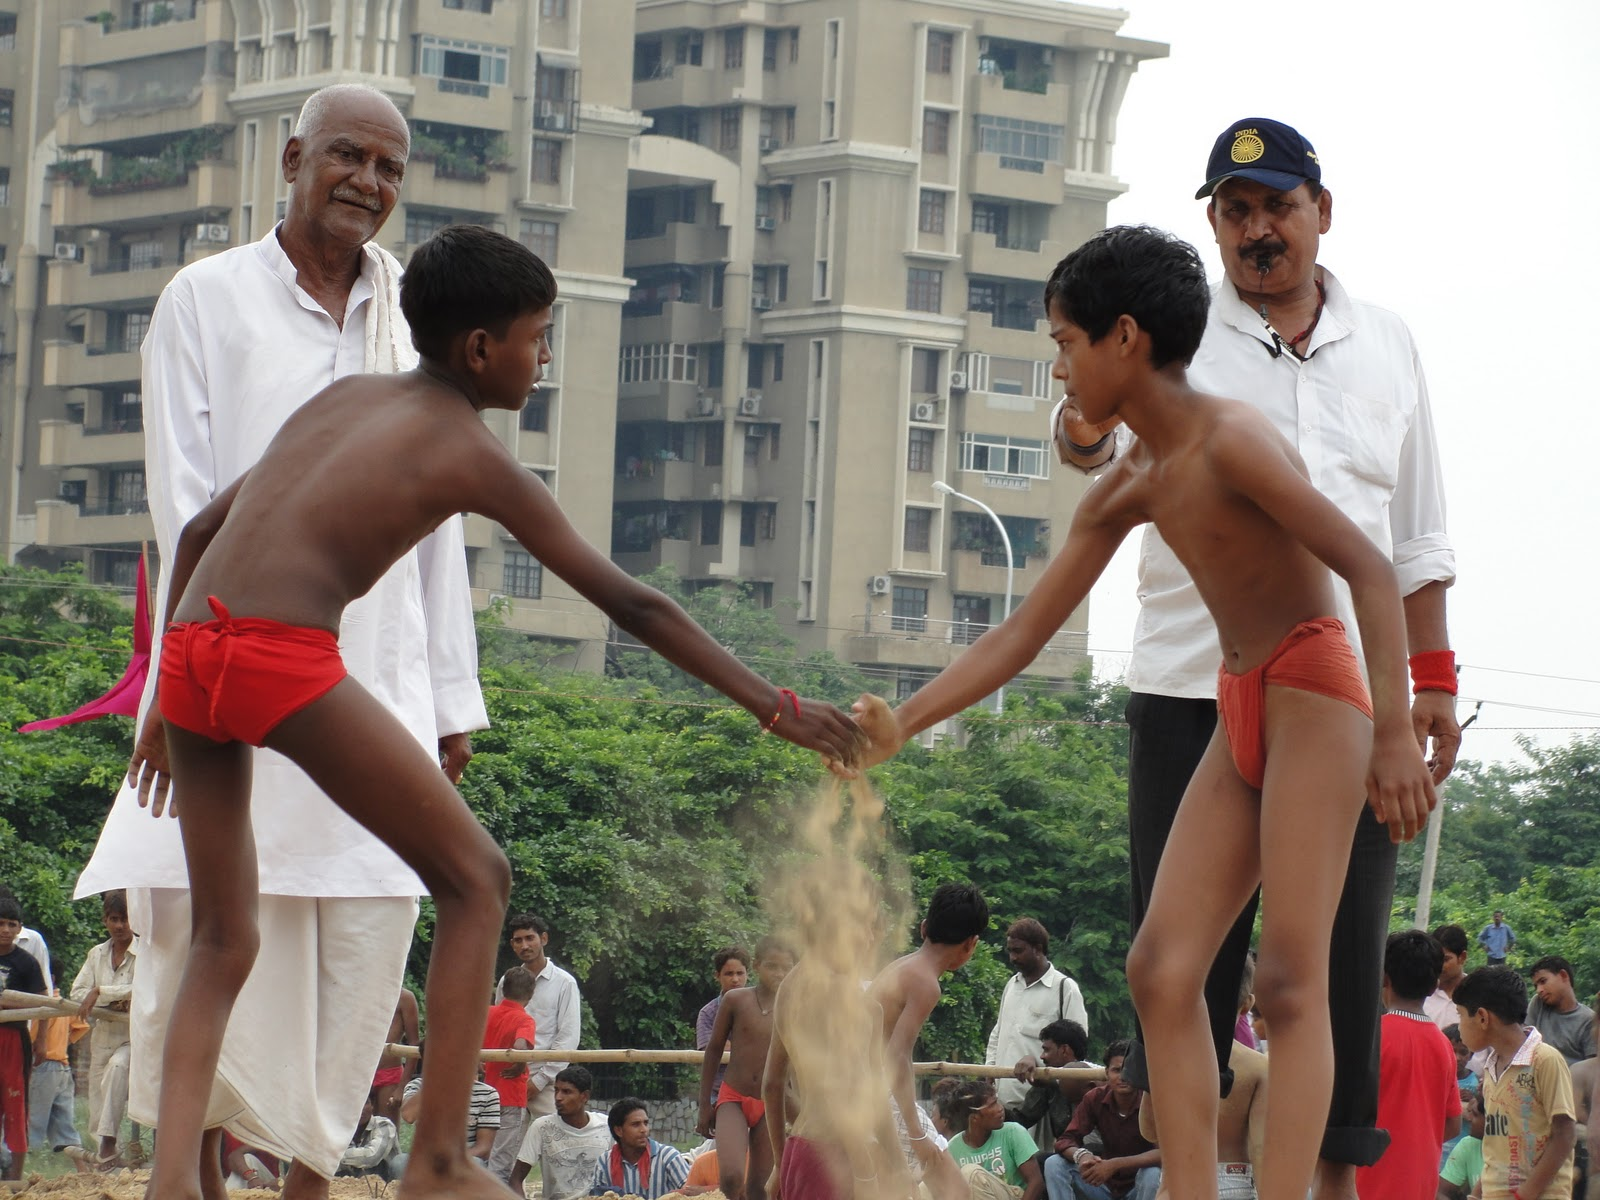 indian wrestler kids At 4 o'clock young wrestlers began to compete. I was amazed to see the way these kids were fighting. They were like the miniature wrestlers who know every ...